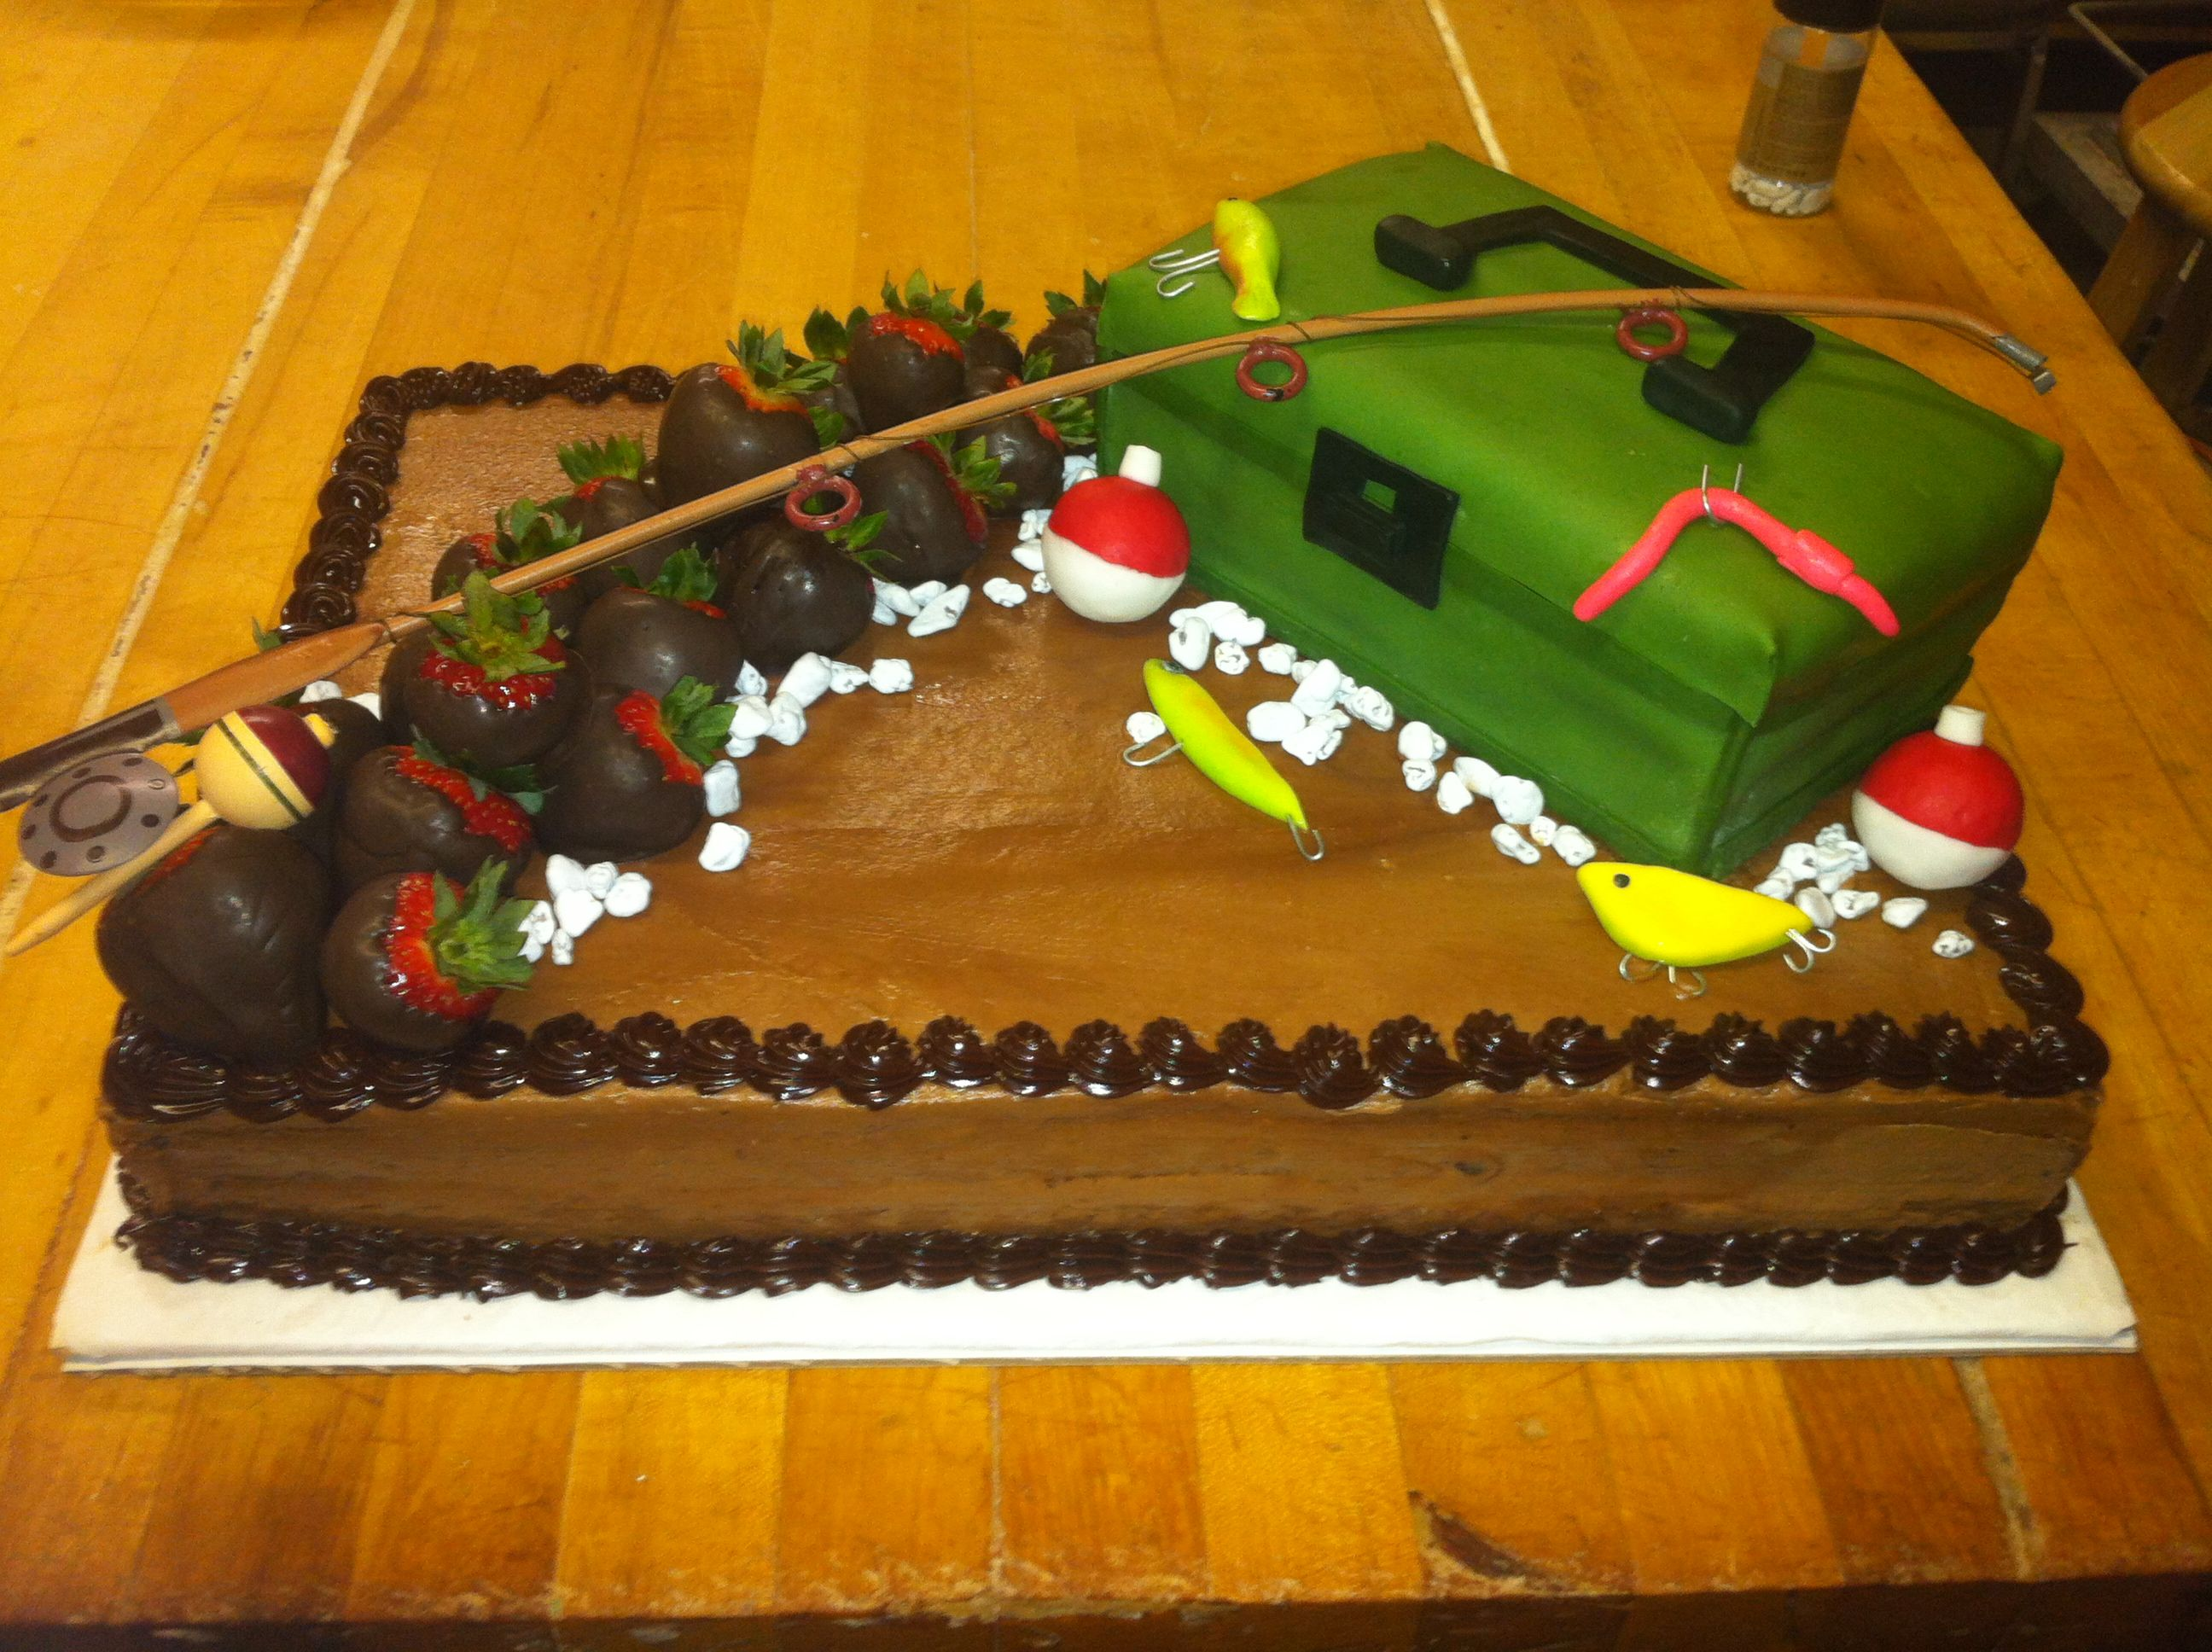 Grooms cake for the fishing man party and shower ideas for Fishing themed cakes